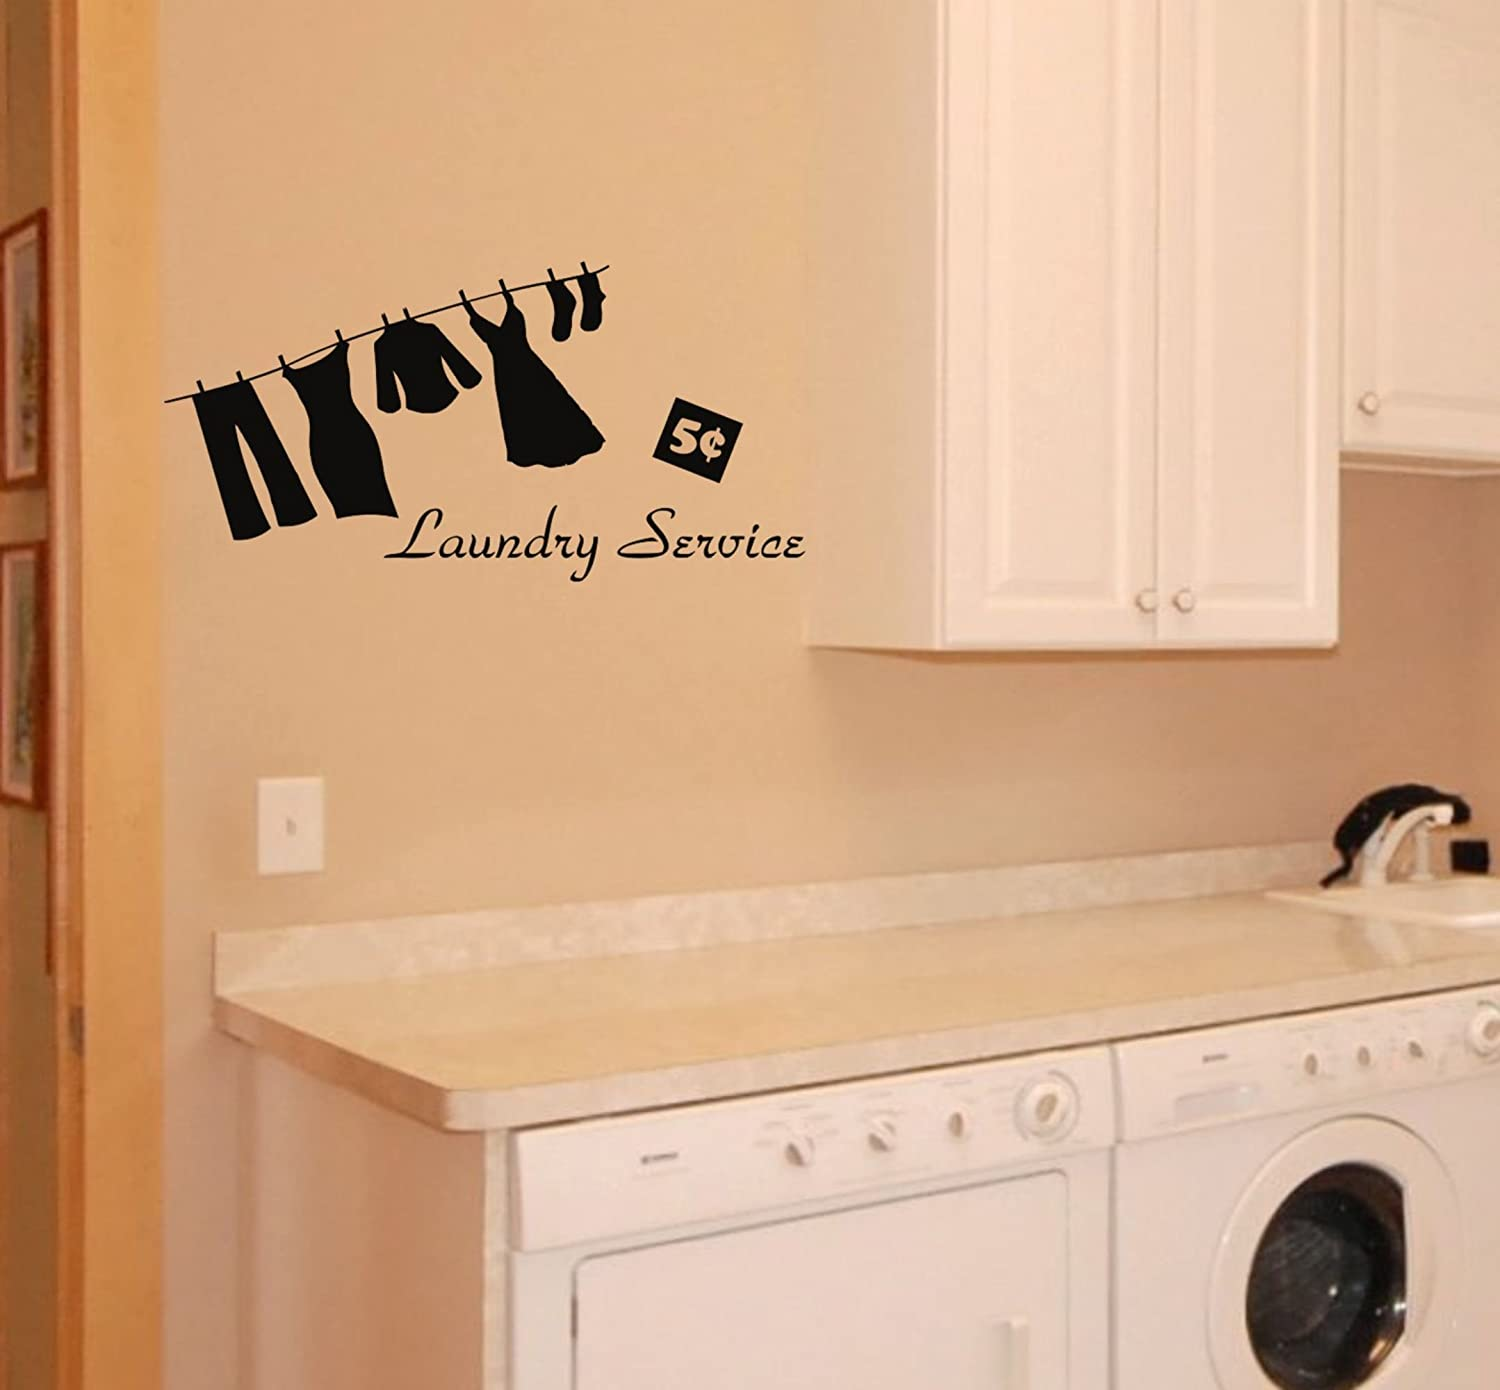 Amazon.com: Laundry Room wall decal: Home & Kitchen